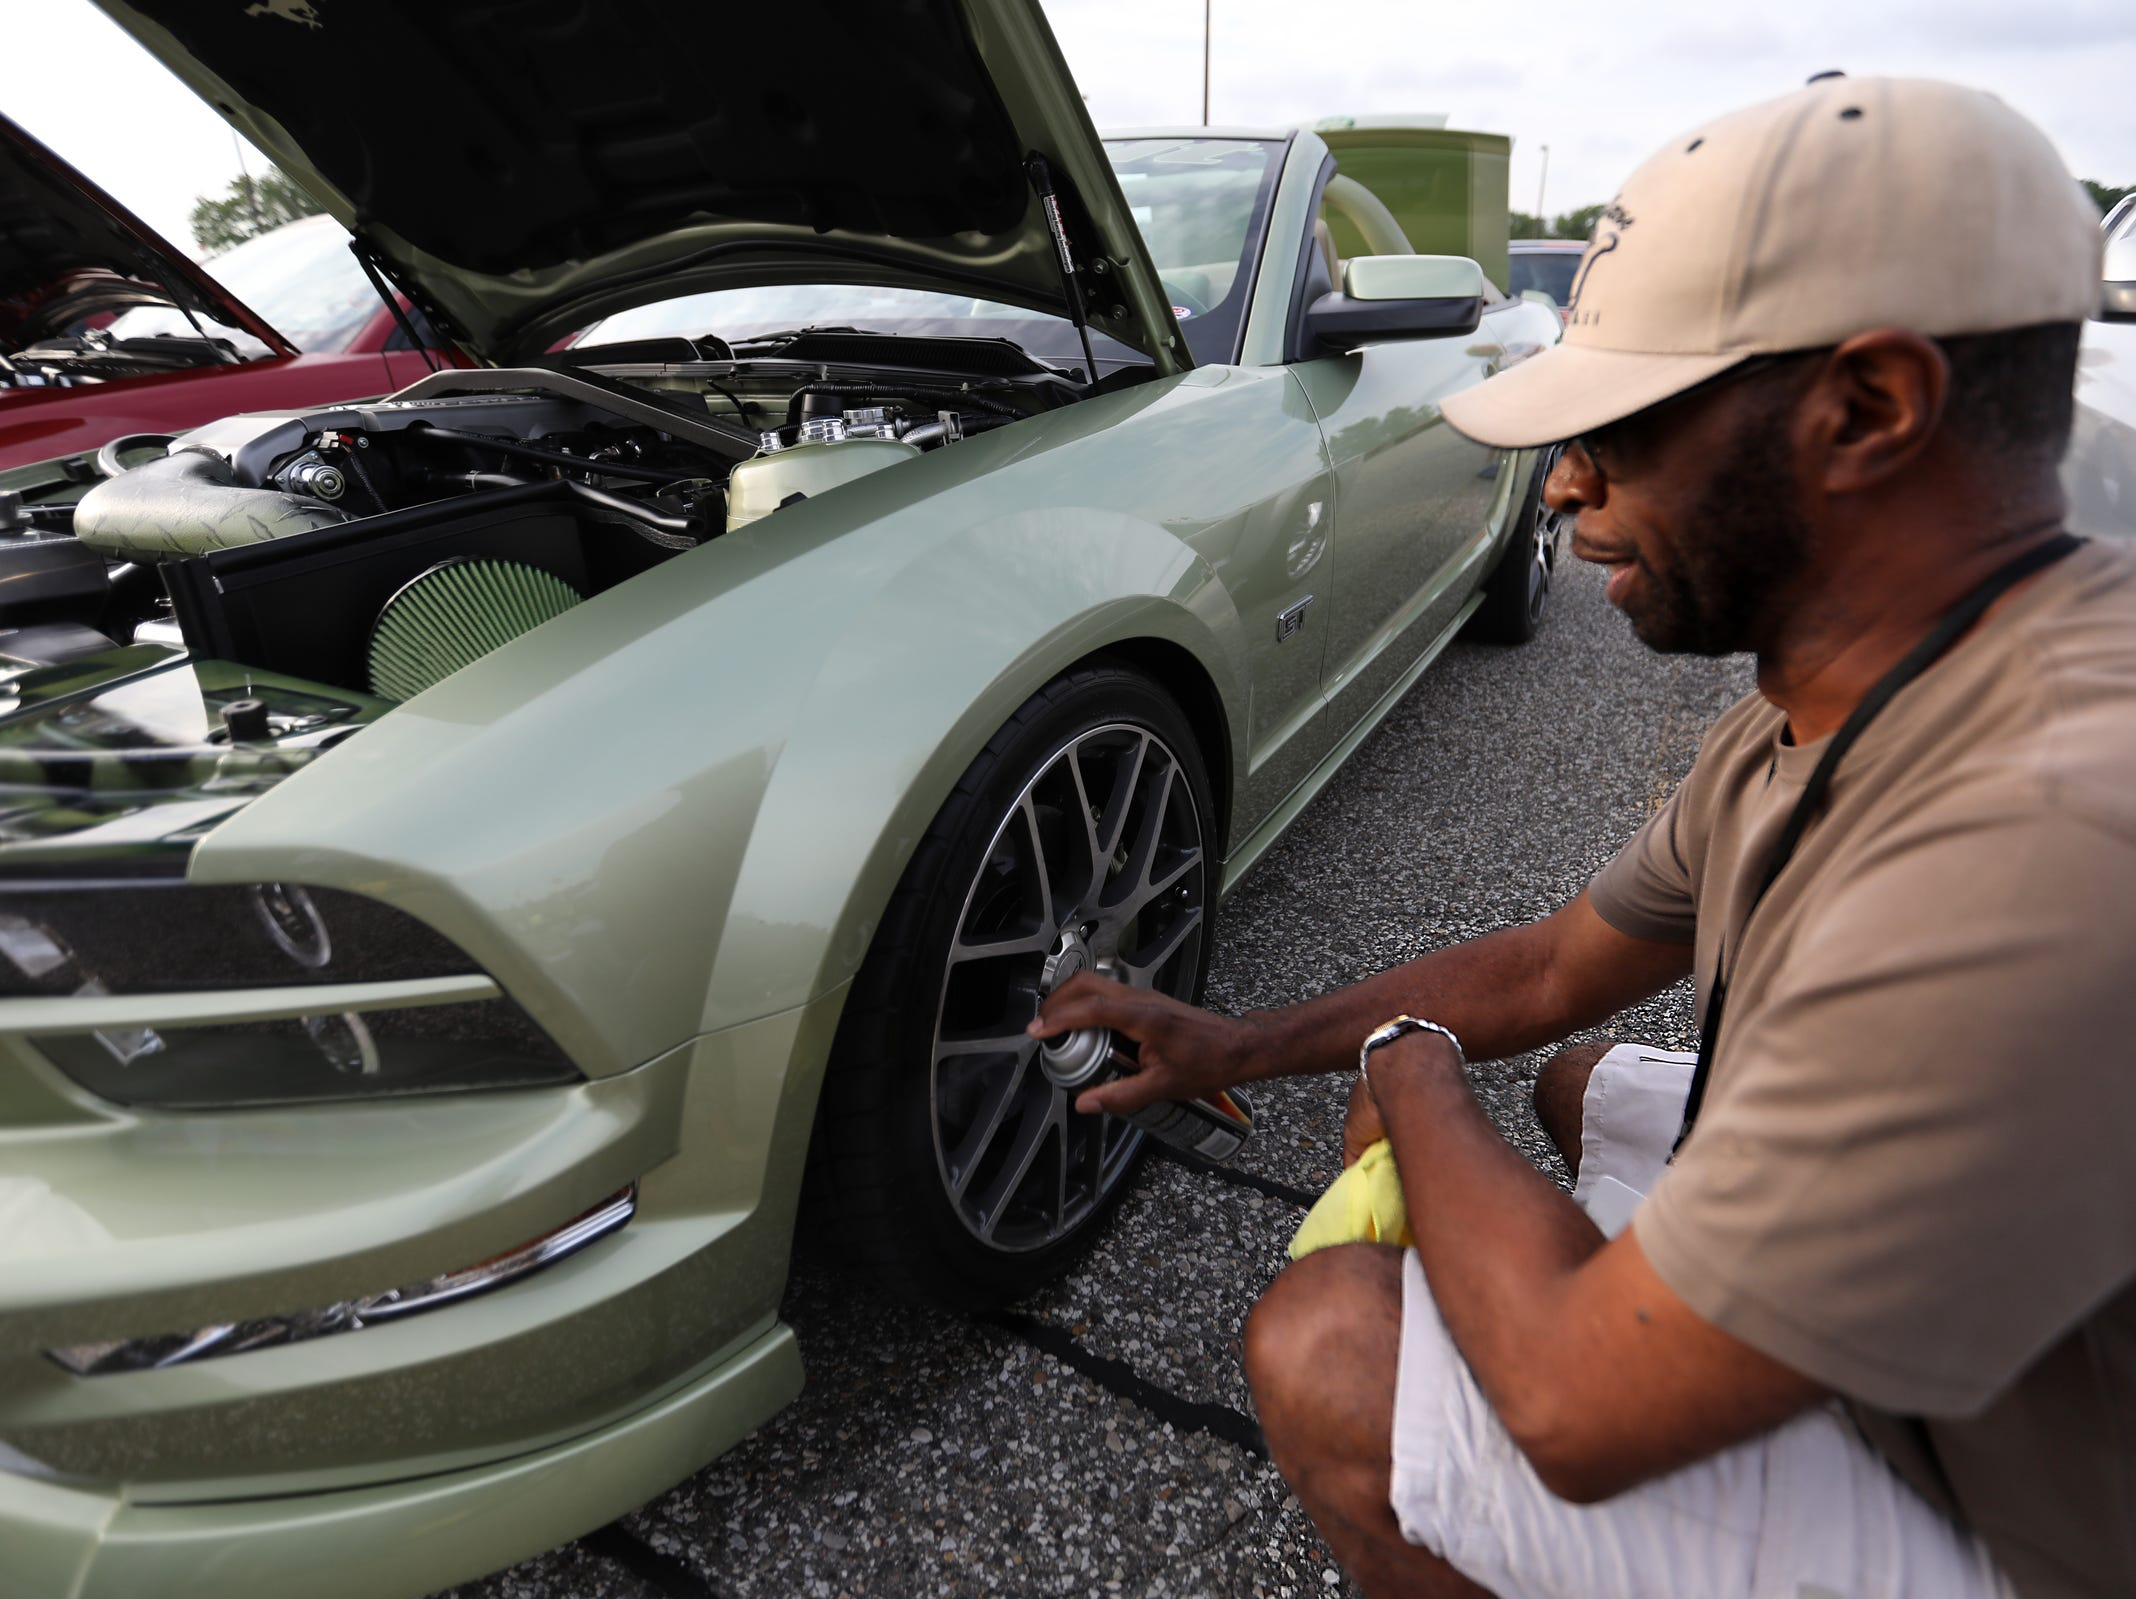 Peter Dunbar, 63, of Detroit sprays tire shine on the wheels of his 2006 Ford Mustang GT convertible, during a Ford event celebrating the 10,000,000 Mustang built at the Ford Motor Company World Headquarters in Dearborn on Wed., Aug 8, 2018.